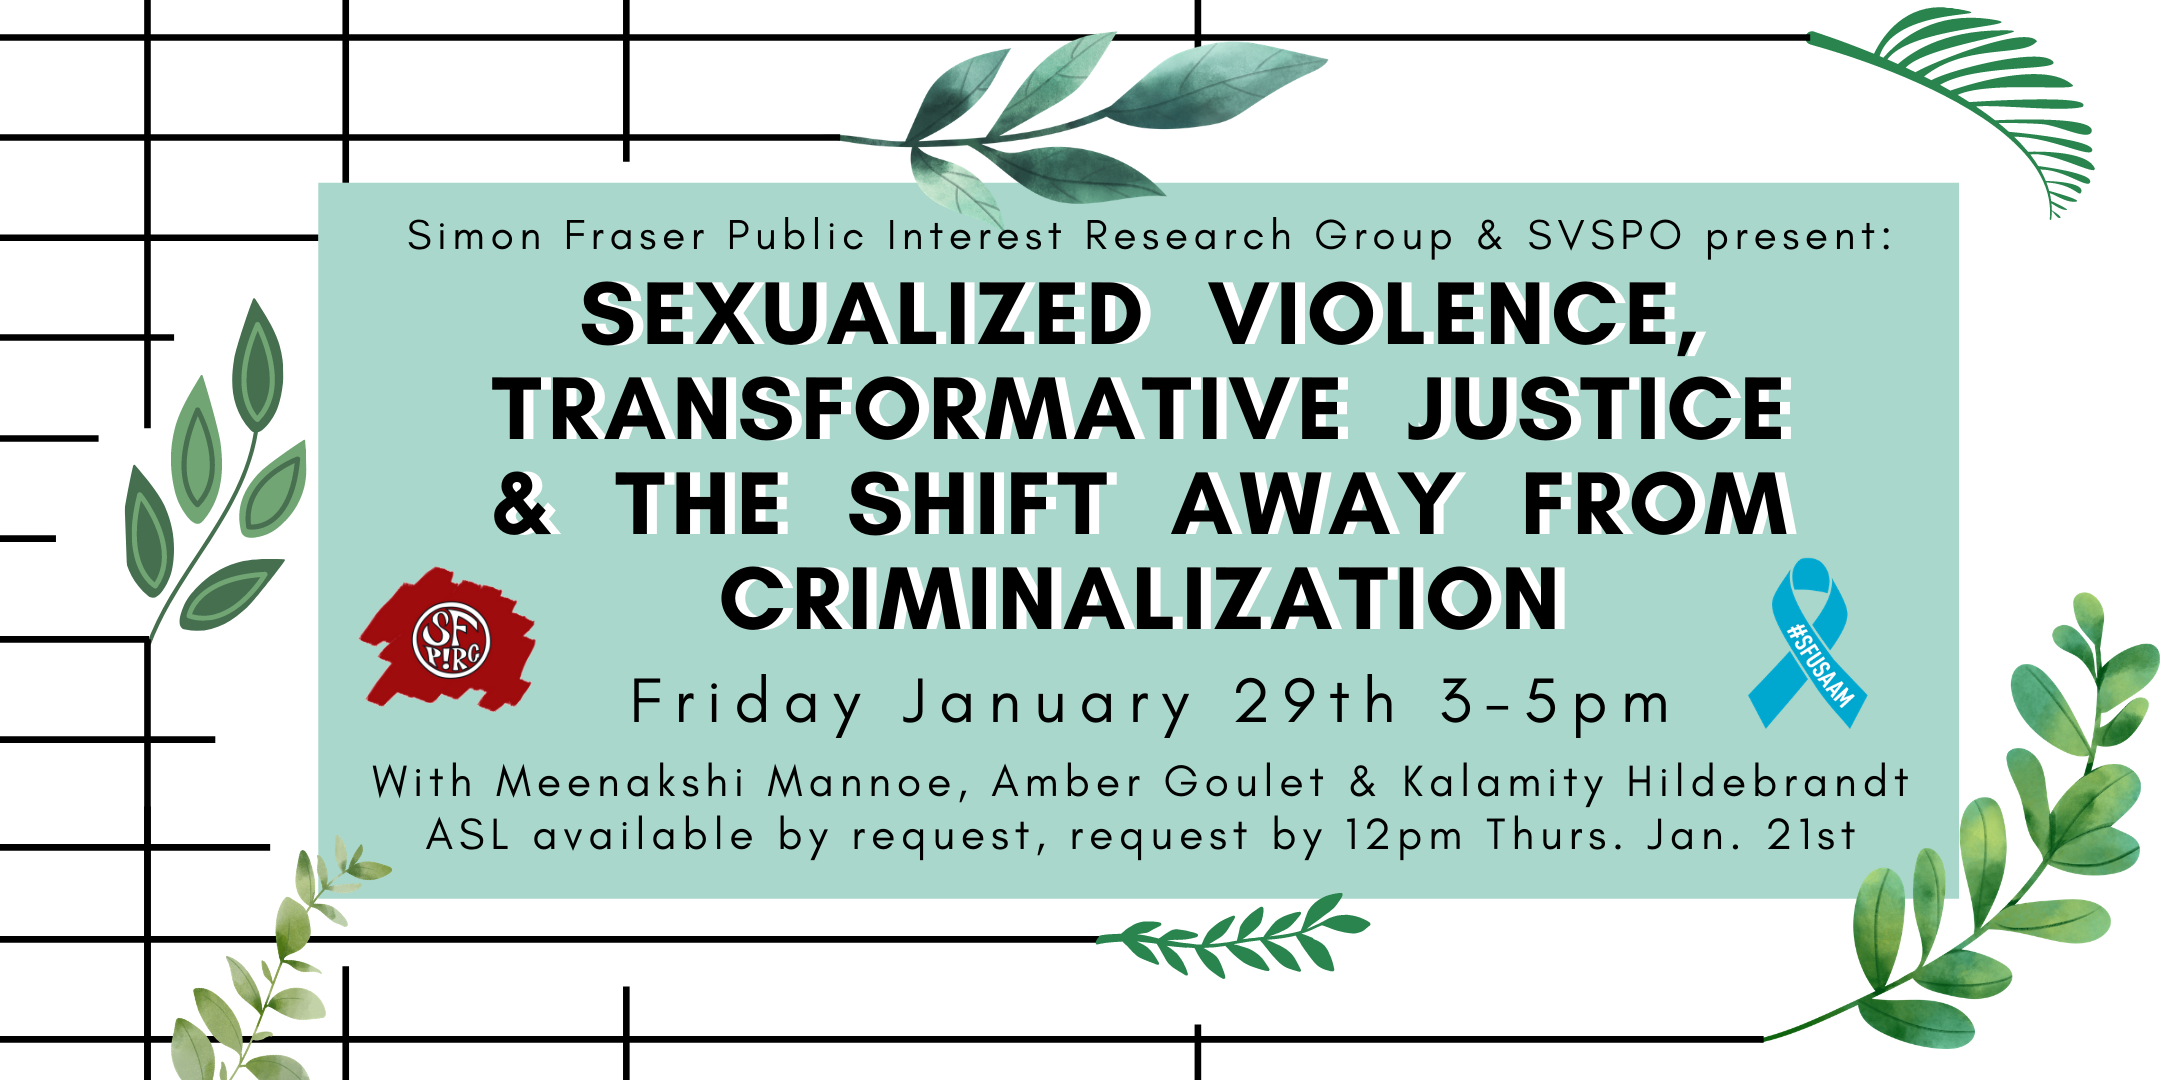 Black bars end and shift into green leaves. A green text box reads SFPIRG & SVSPO present: Sexualized Violence, Transformative Justice and the Shift Away from Criminalization, Friday January 29th, 3-5pm, with Meenakshi Mannoe, Amber Goulet & Kalamity Hildebrandt, ASL available by request, request by 12pm Thurs. Jan. 21st.